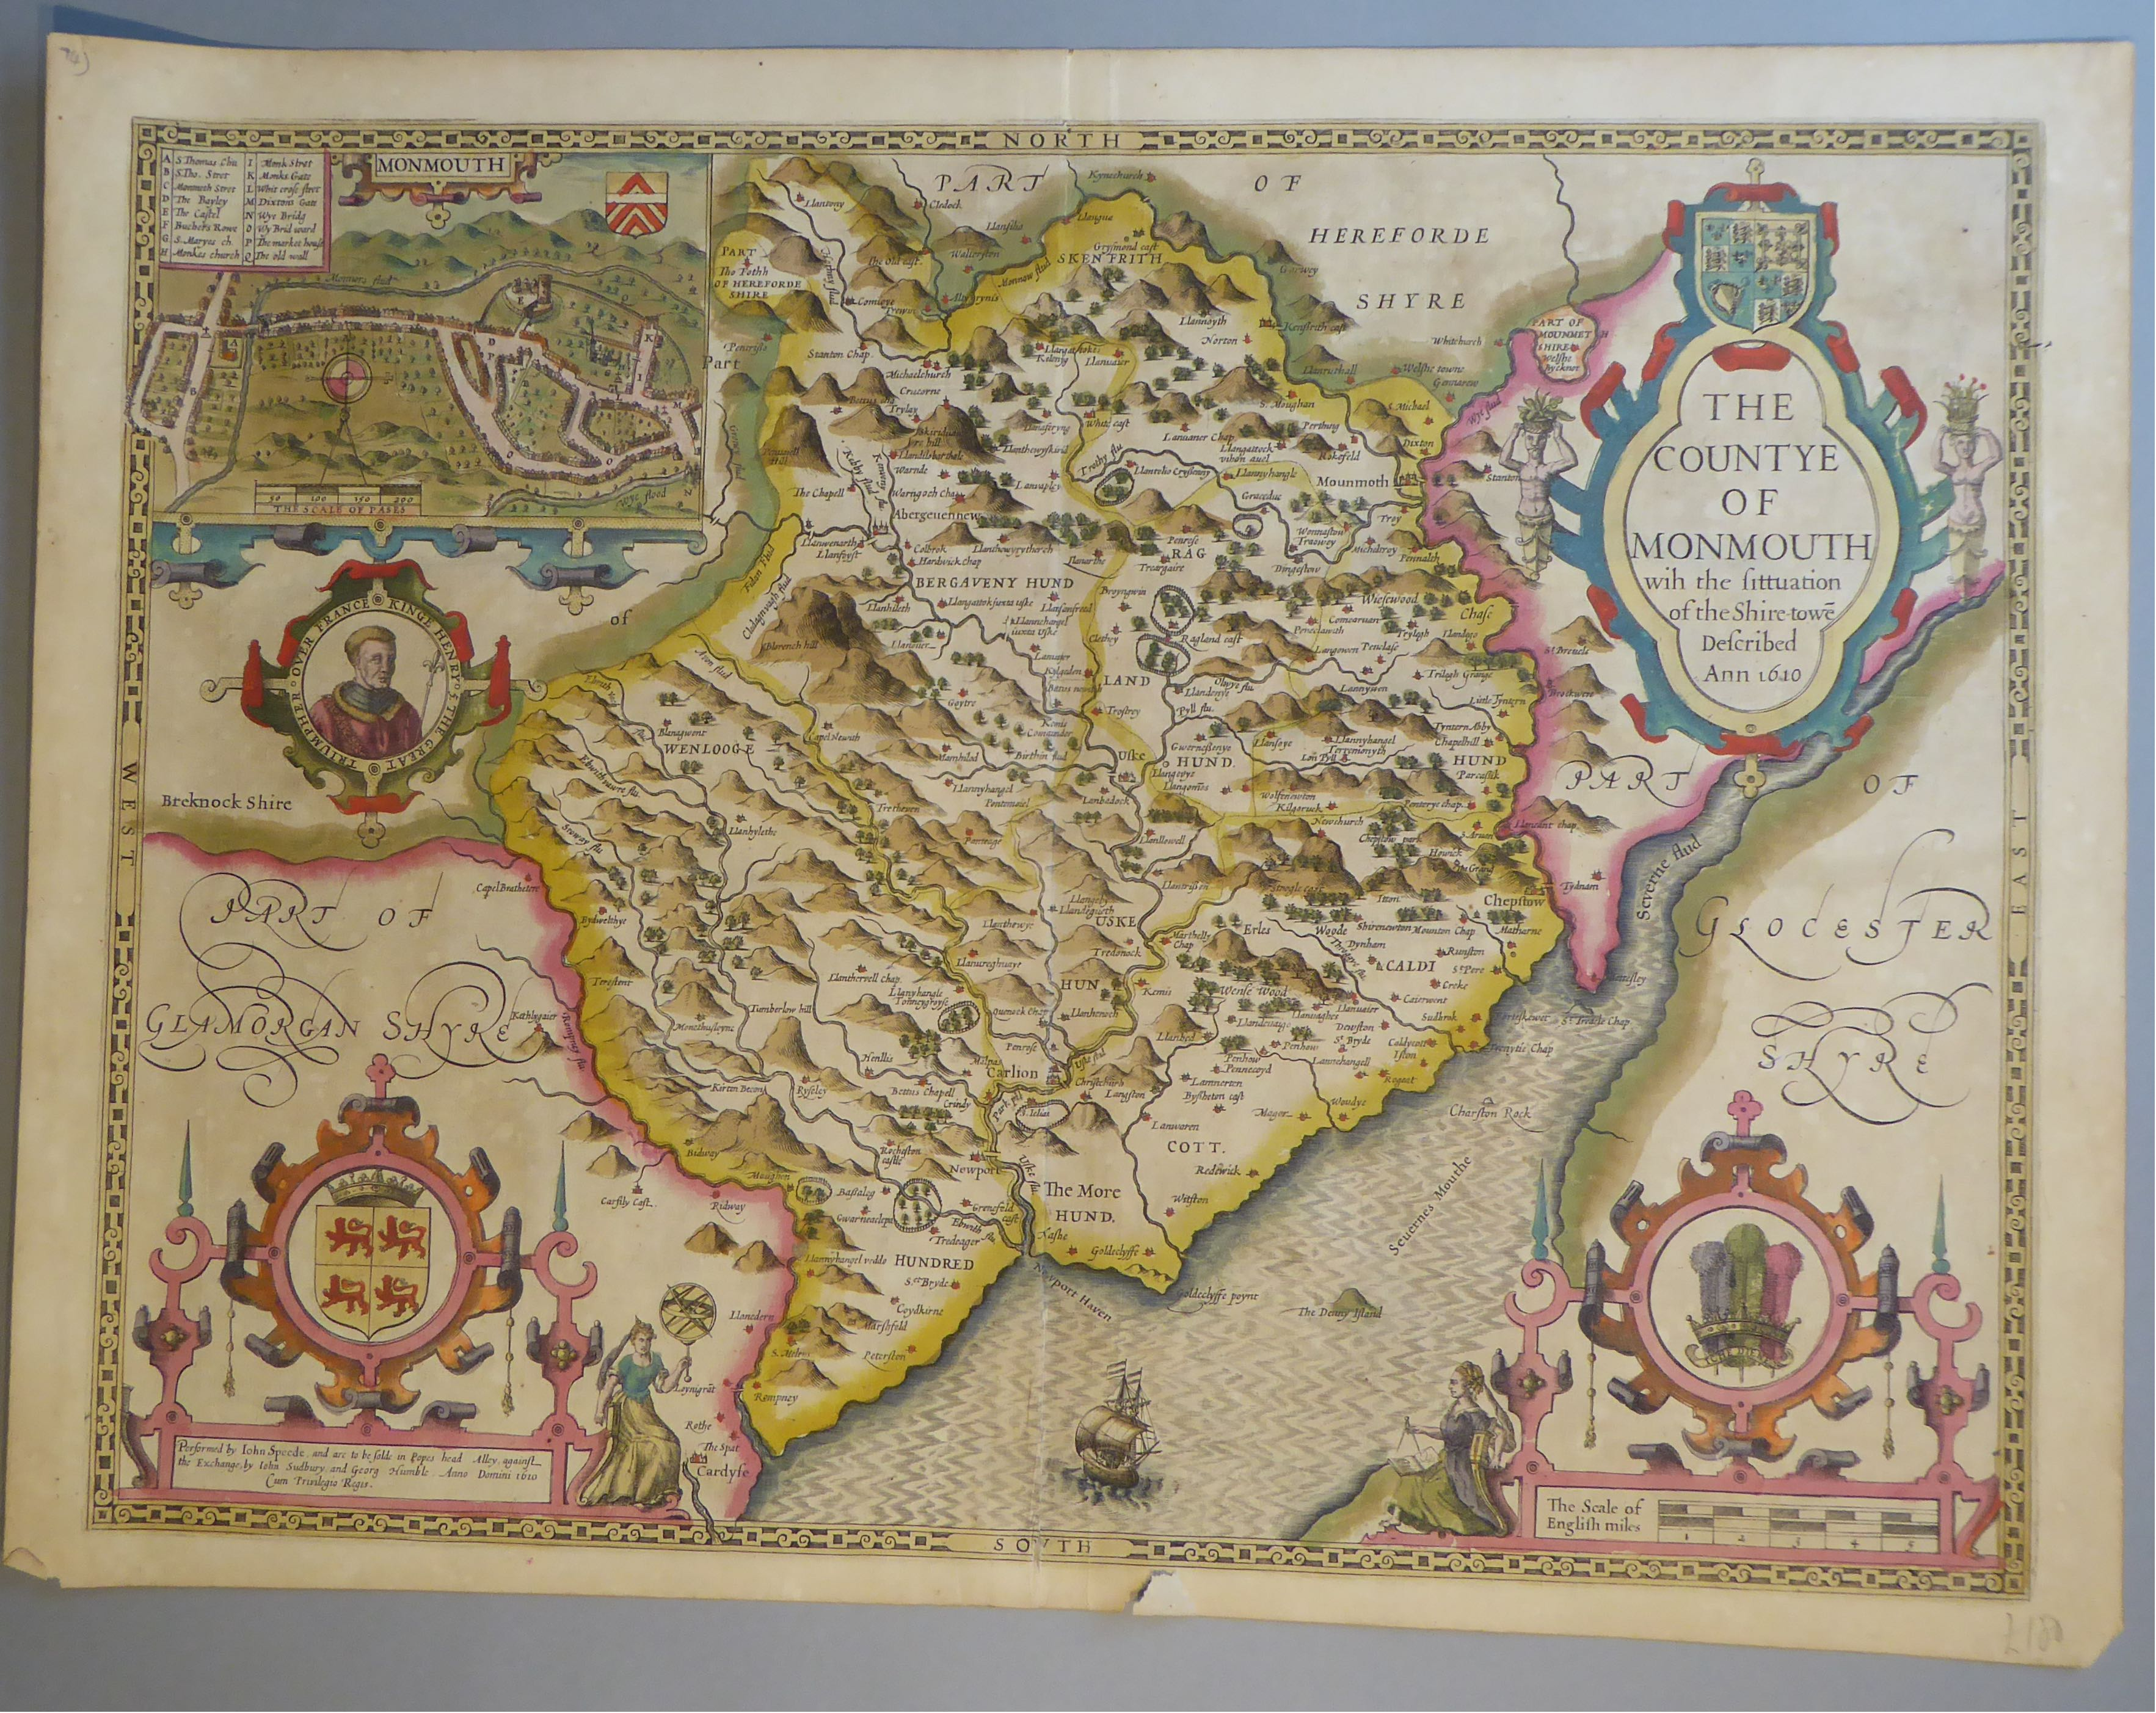 Lot 29 - A C17th hand coloured copper engraved map of The County of Monmouth by John Speed, c1612